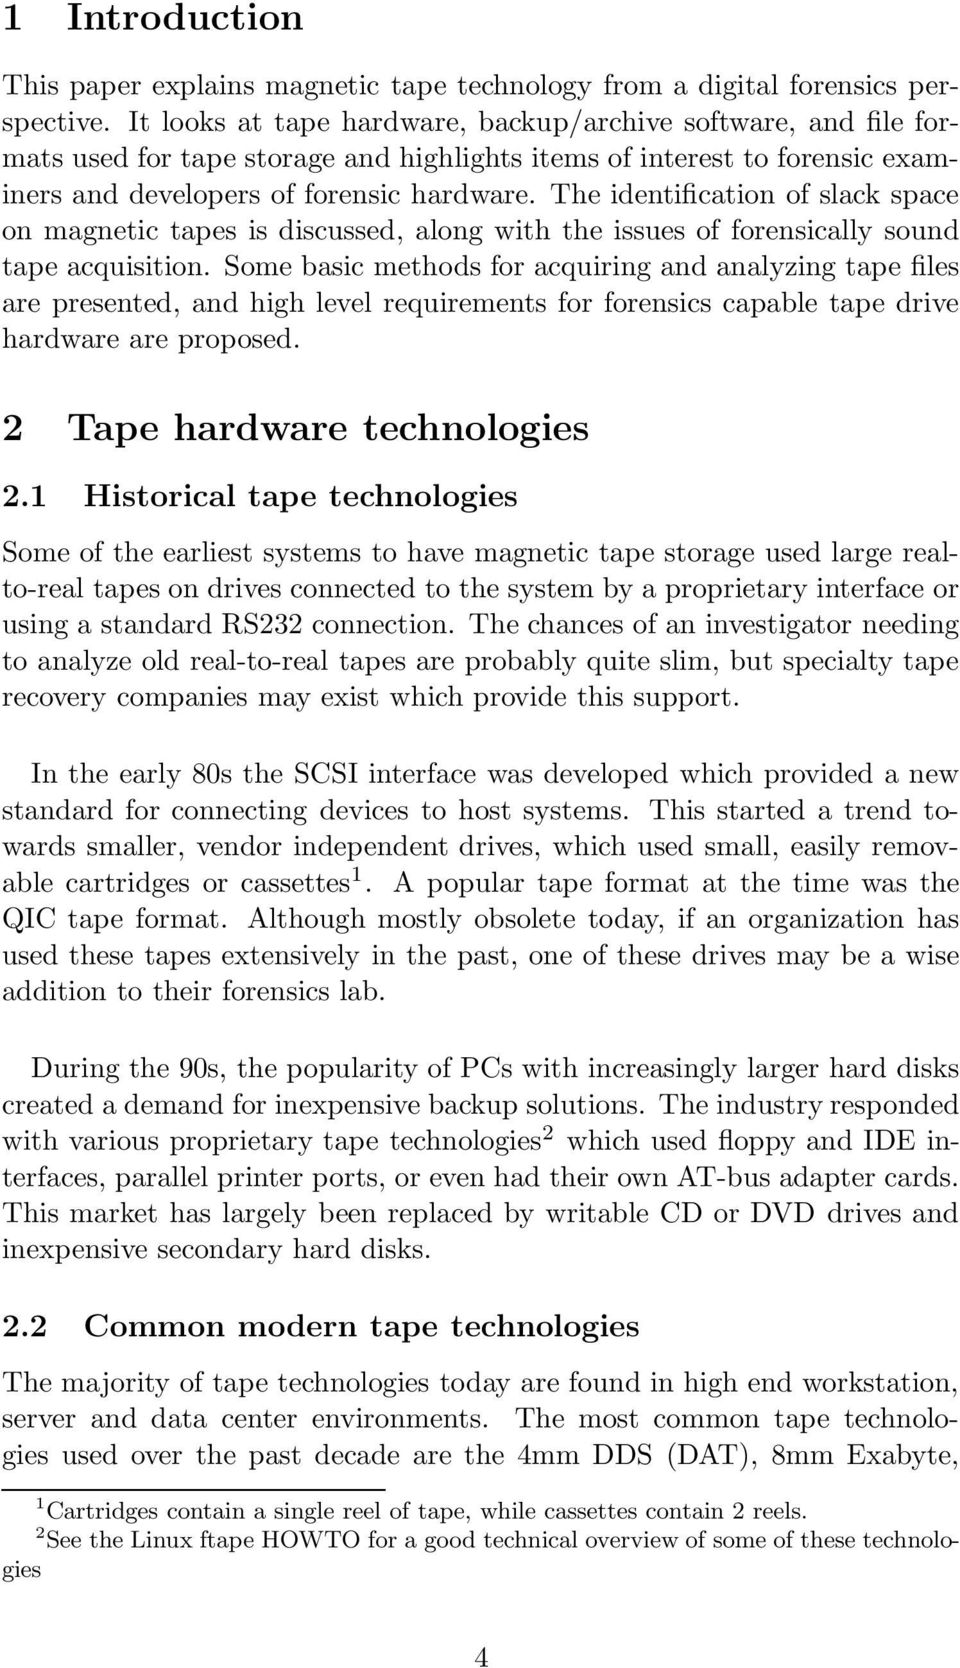 The identification of slack space on magnetic tapes is discussed, along with the issues of forensically sound tape acquisition.